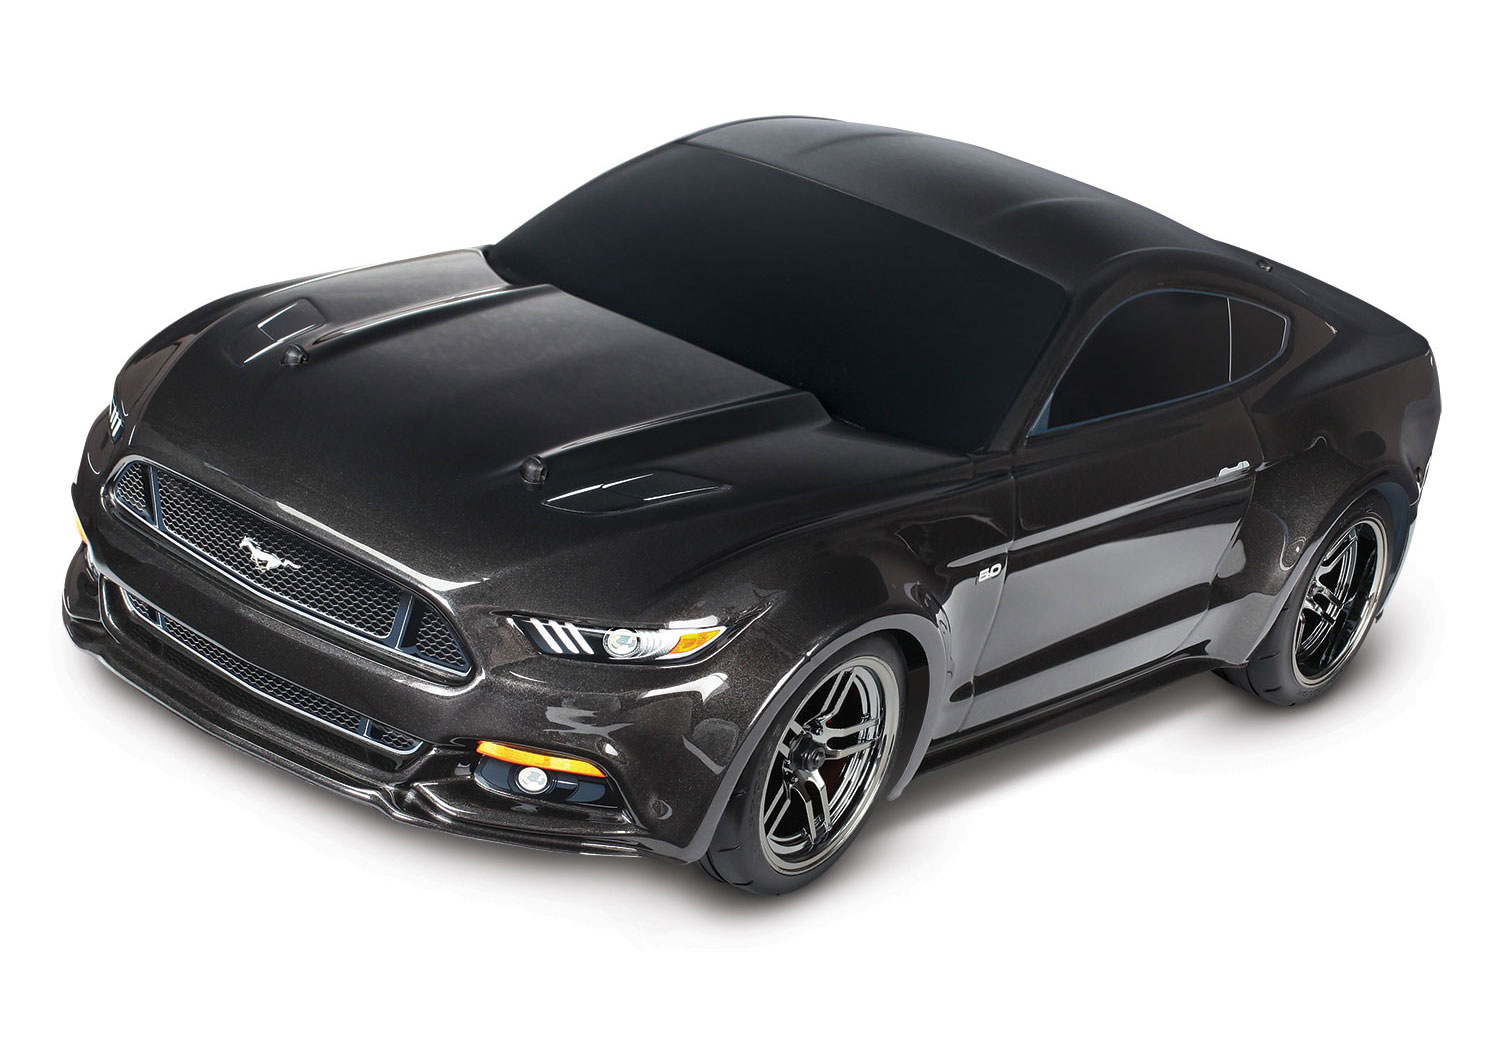 Ford Gt Inside >> Traxxas Ford Mustang GT | An American Icon